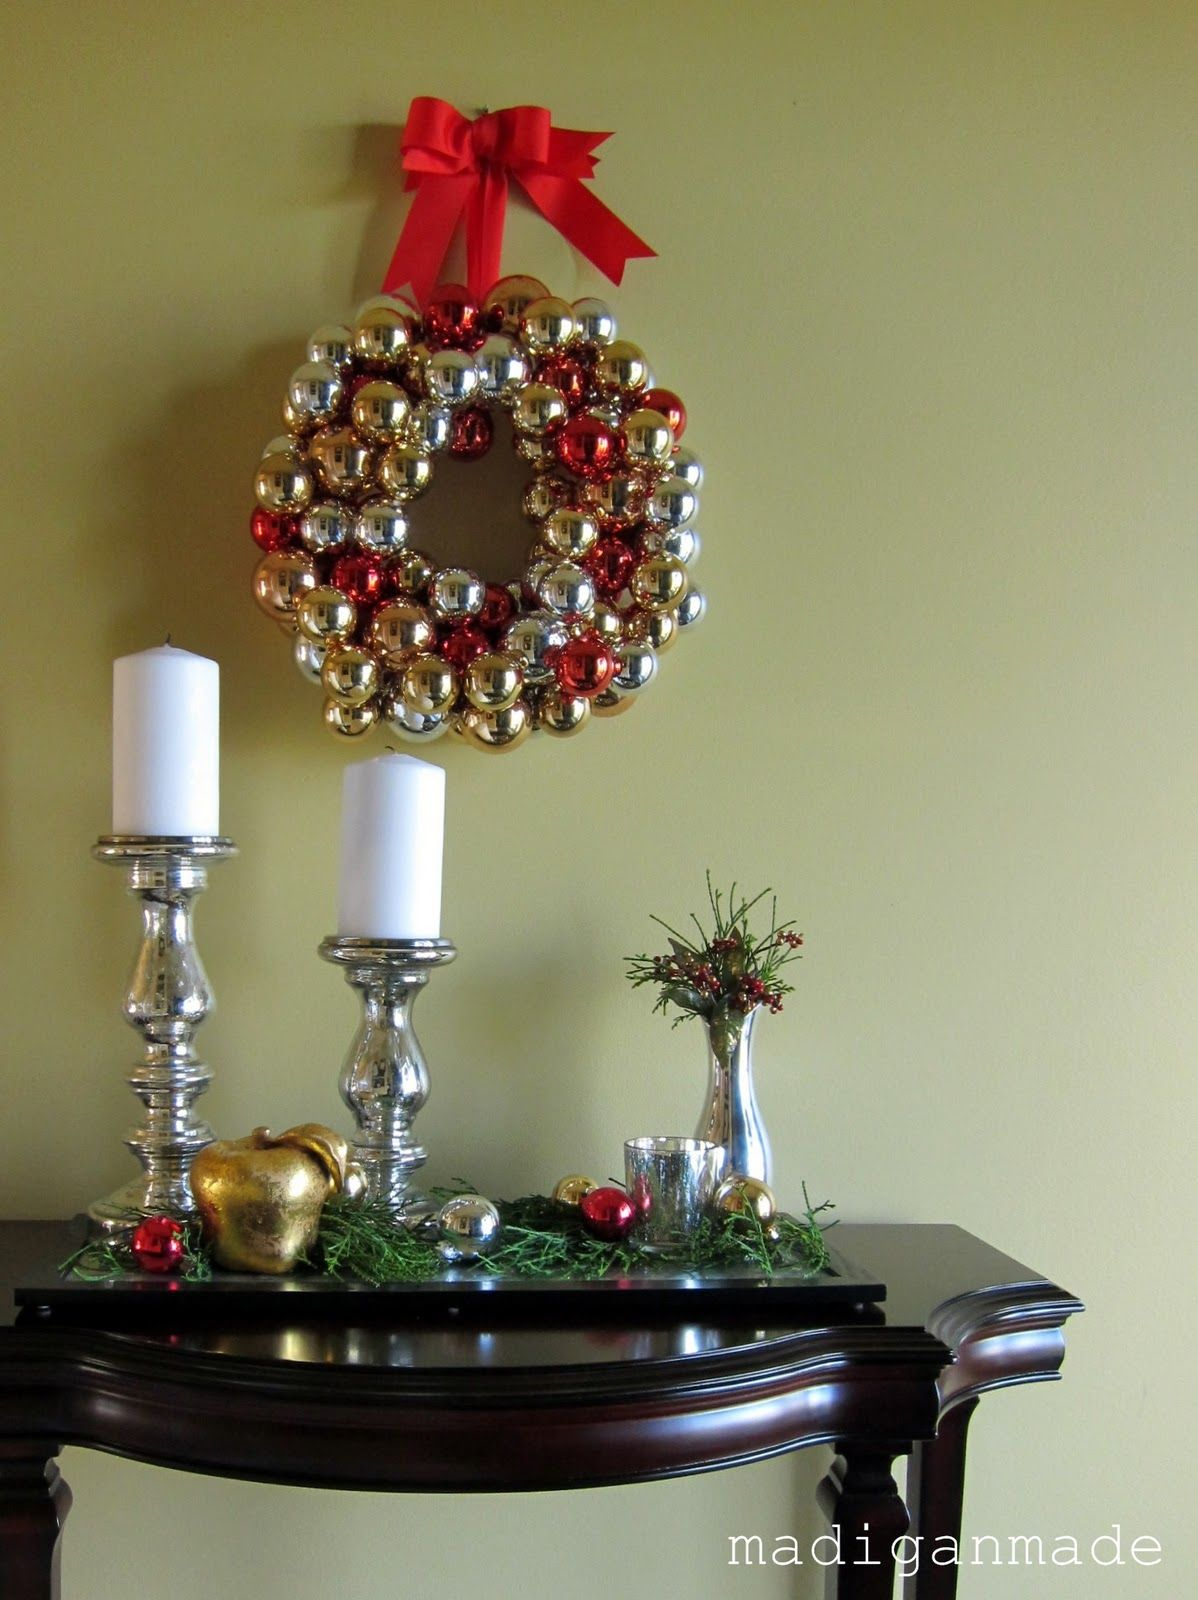 Wreath made out of ornaments